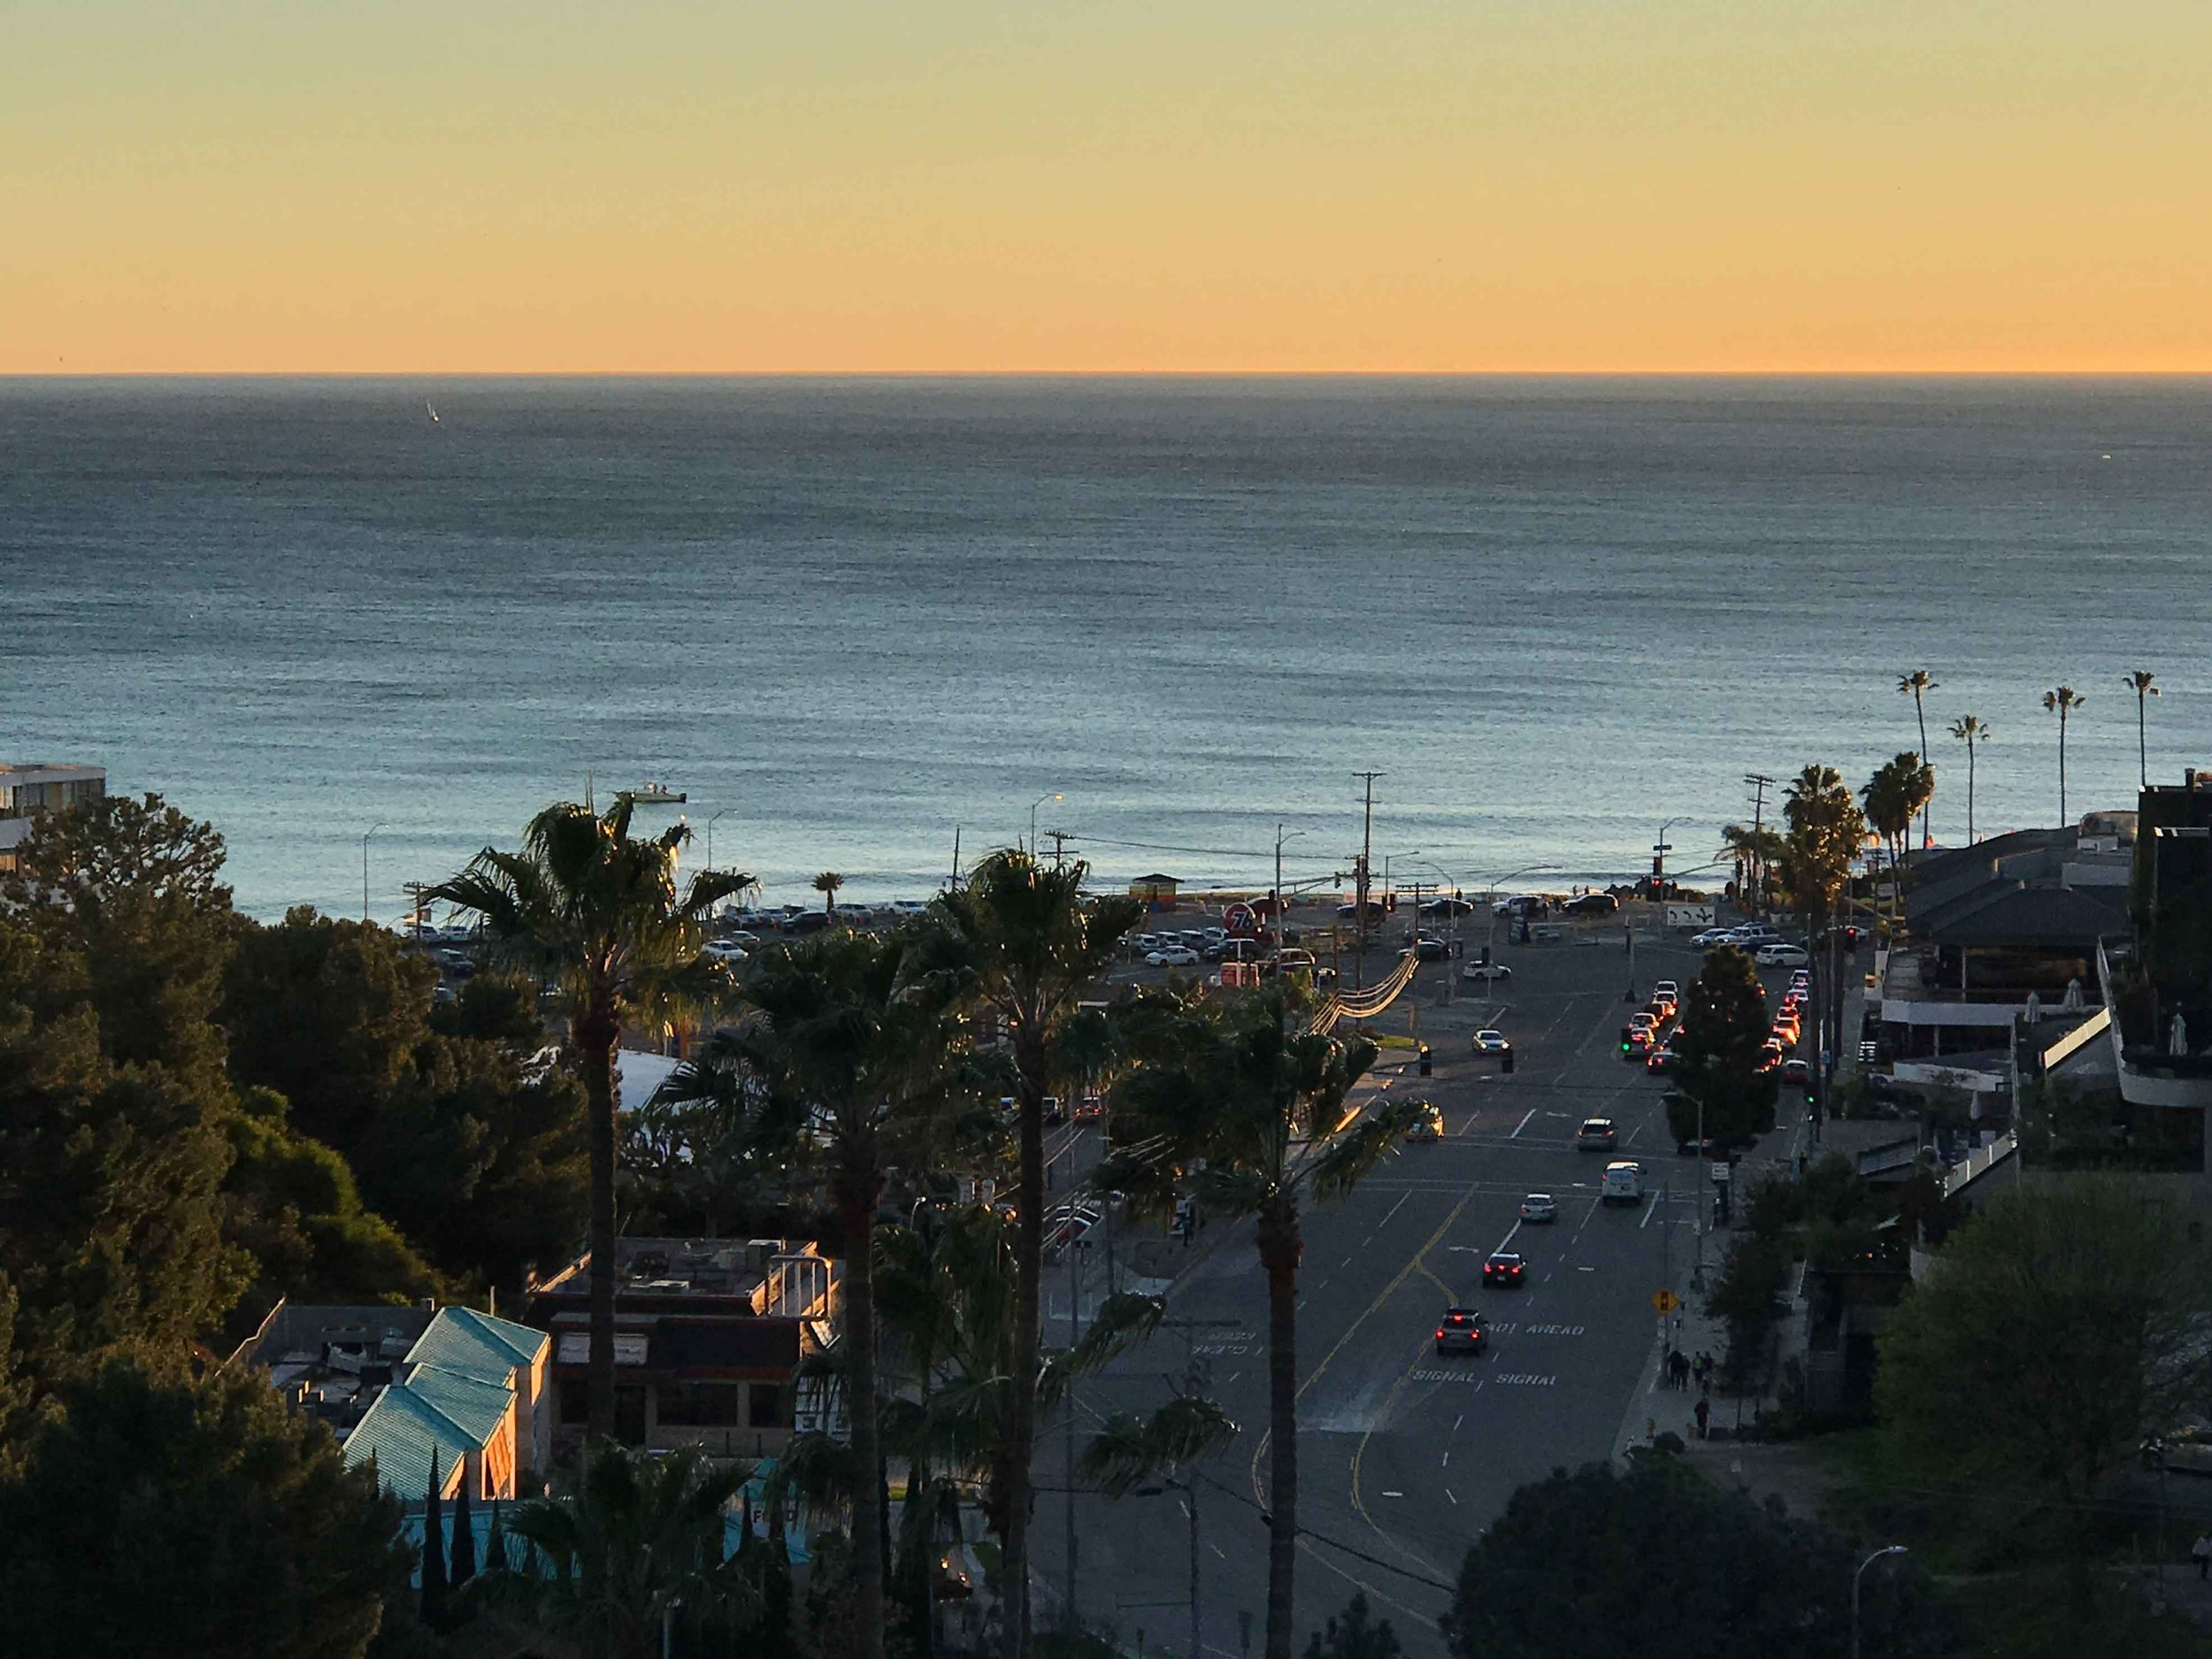 Pacific Coast Highway Beach, sunset, Pacific Palisades, CA. Image©thingstodot.com